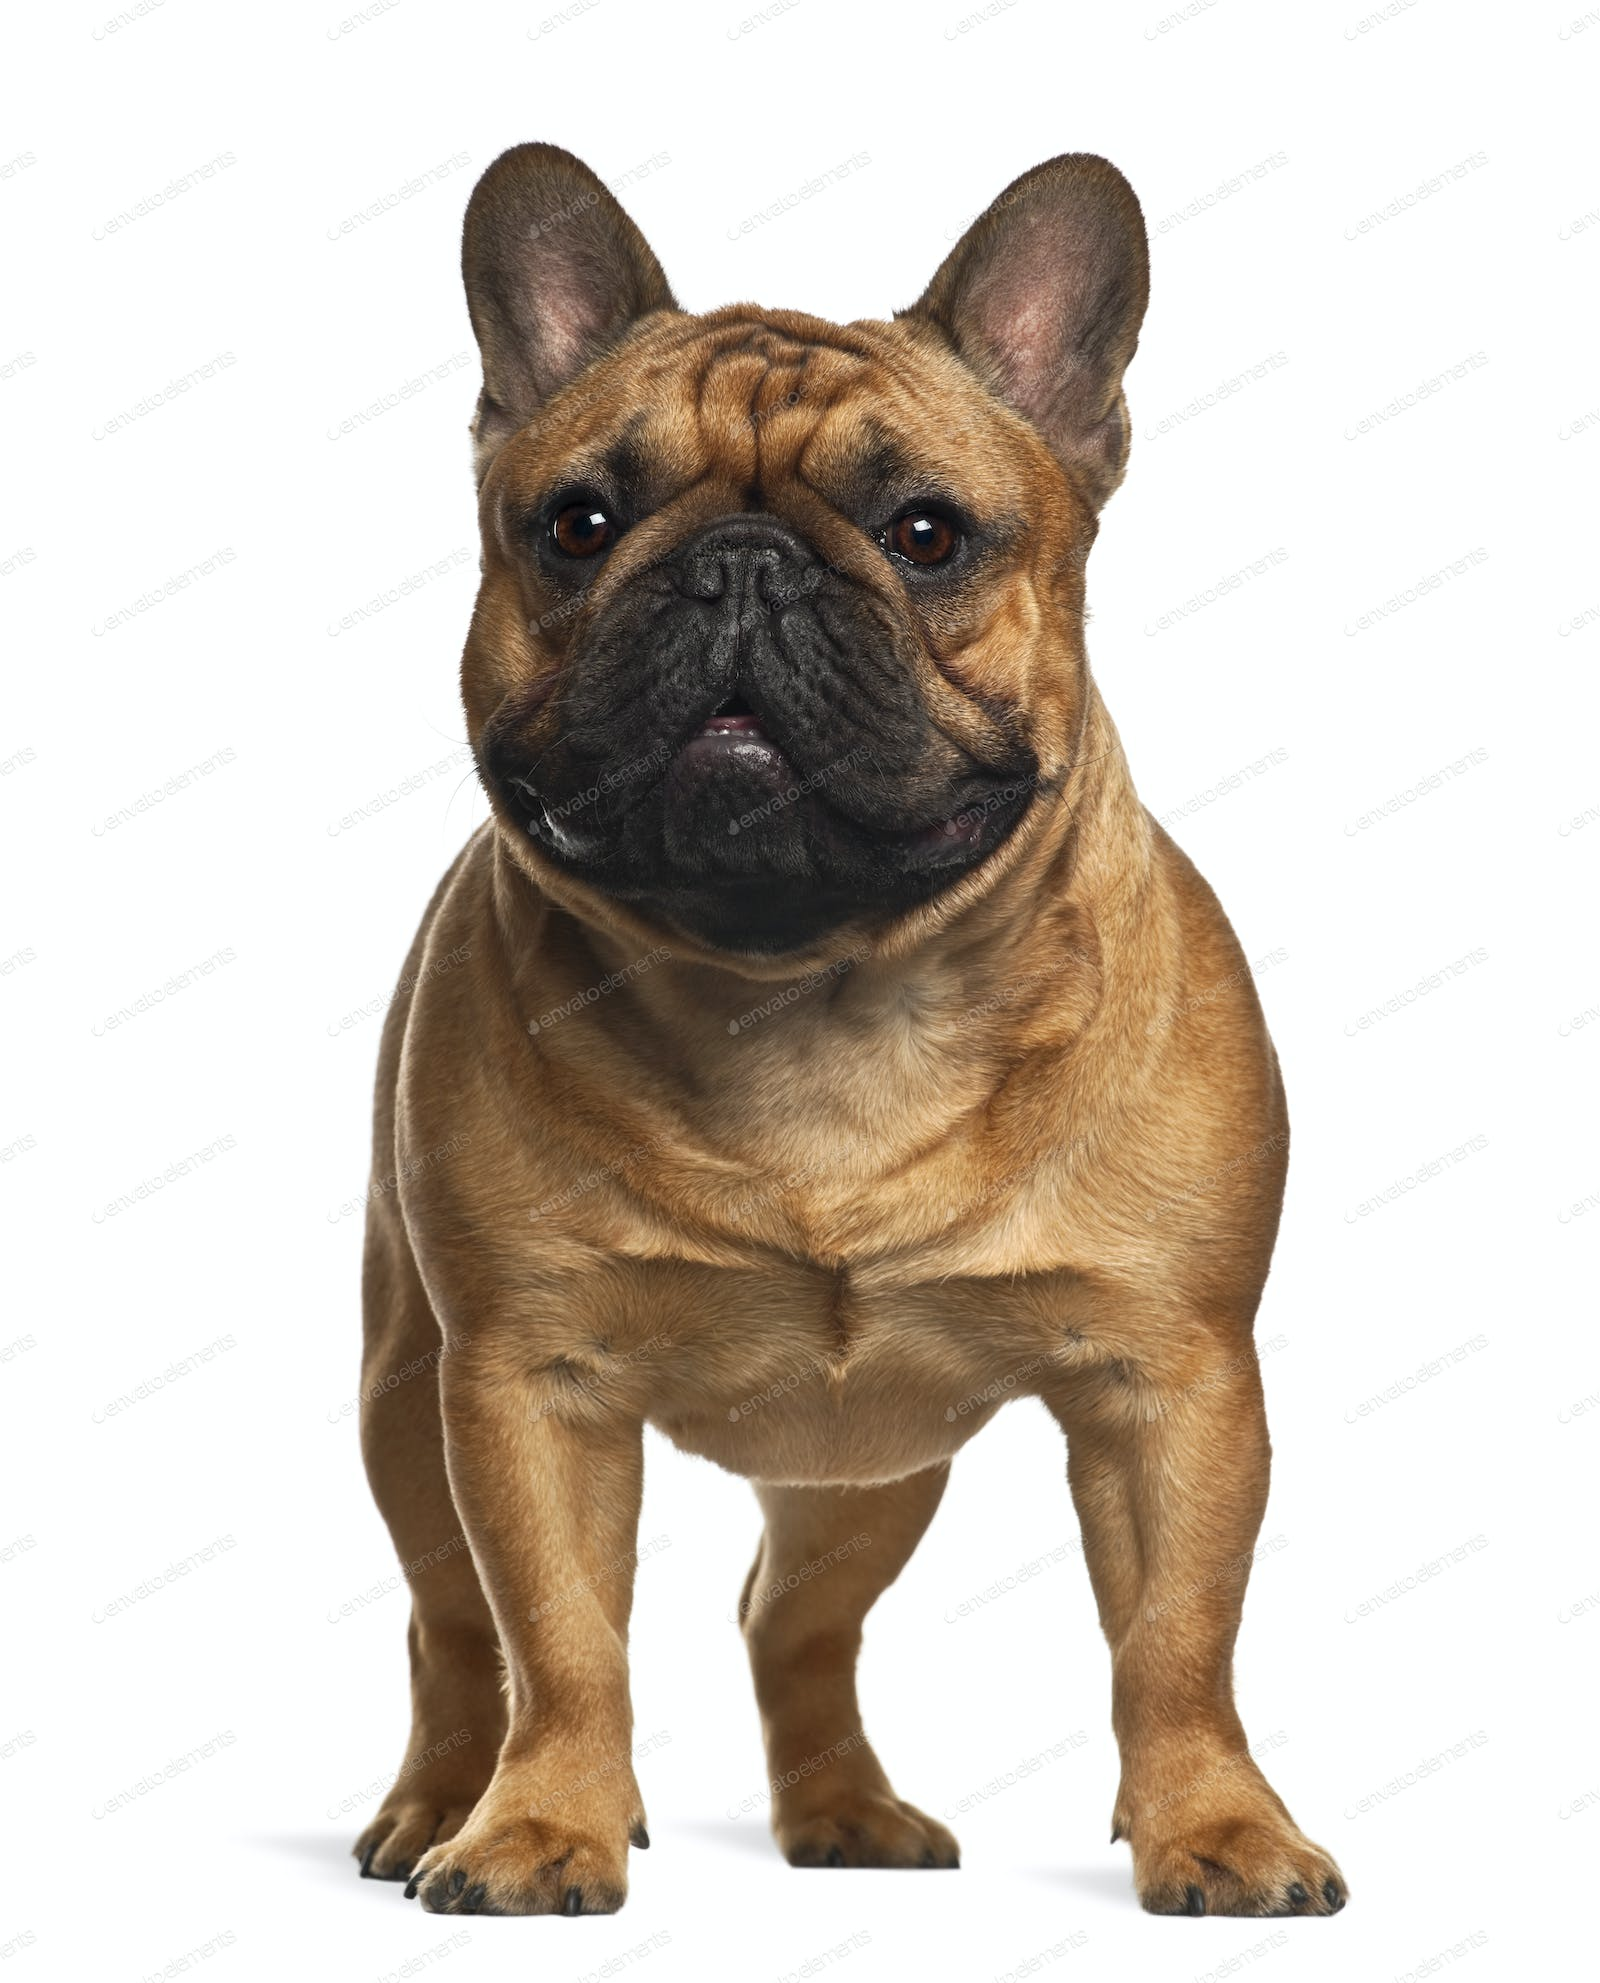 French Bulldog Puppy 4 Months Old Standing Against White Background Photo By Lifeonwhite On Envato Elements